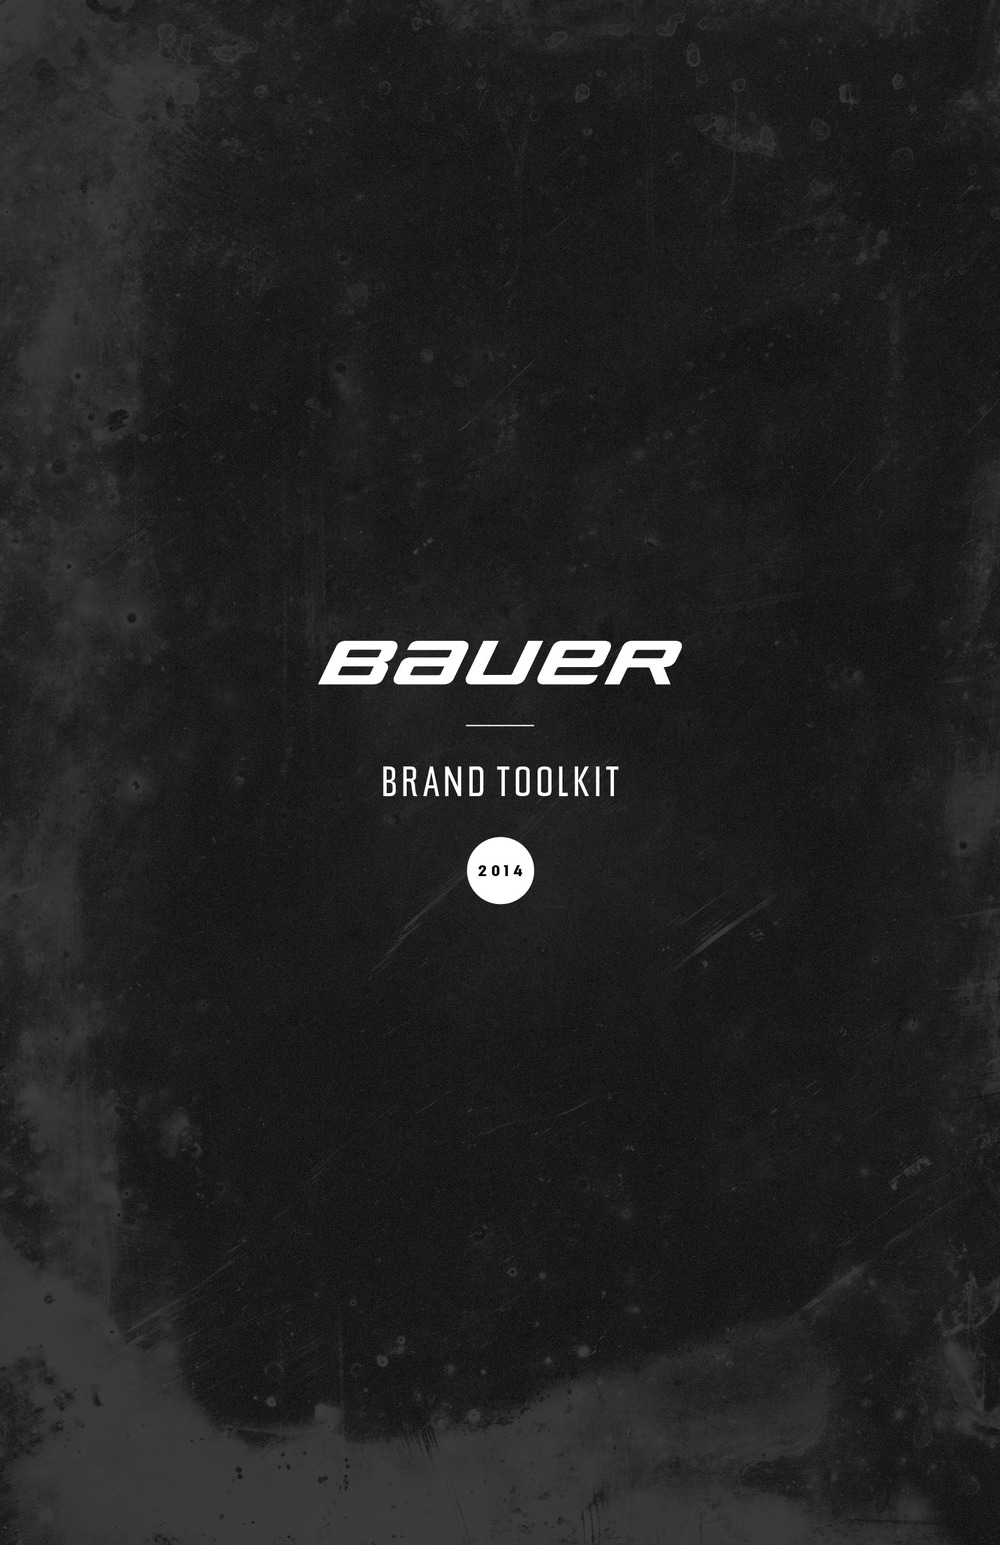 bauer_toolkit.jpg